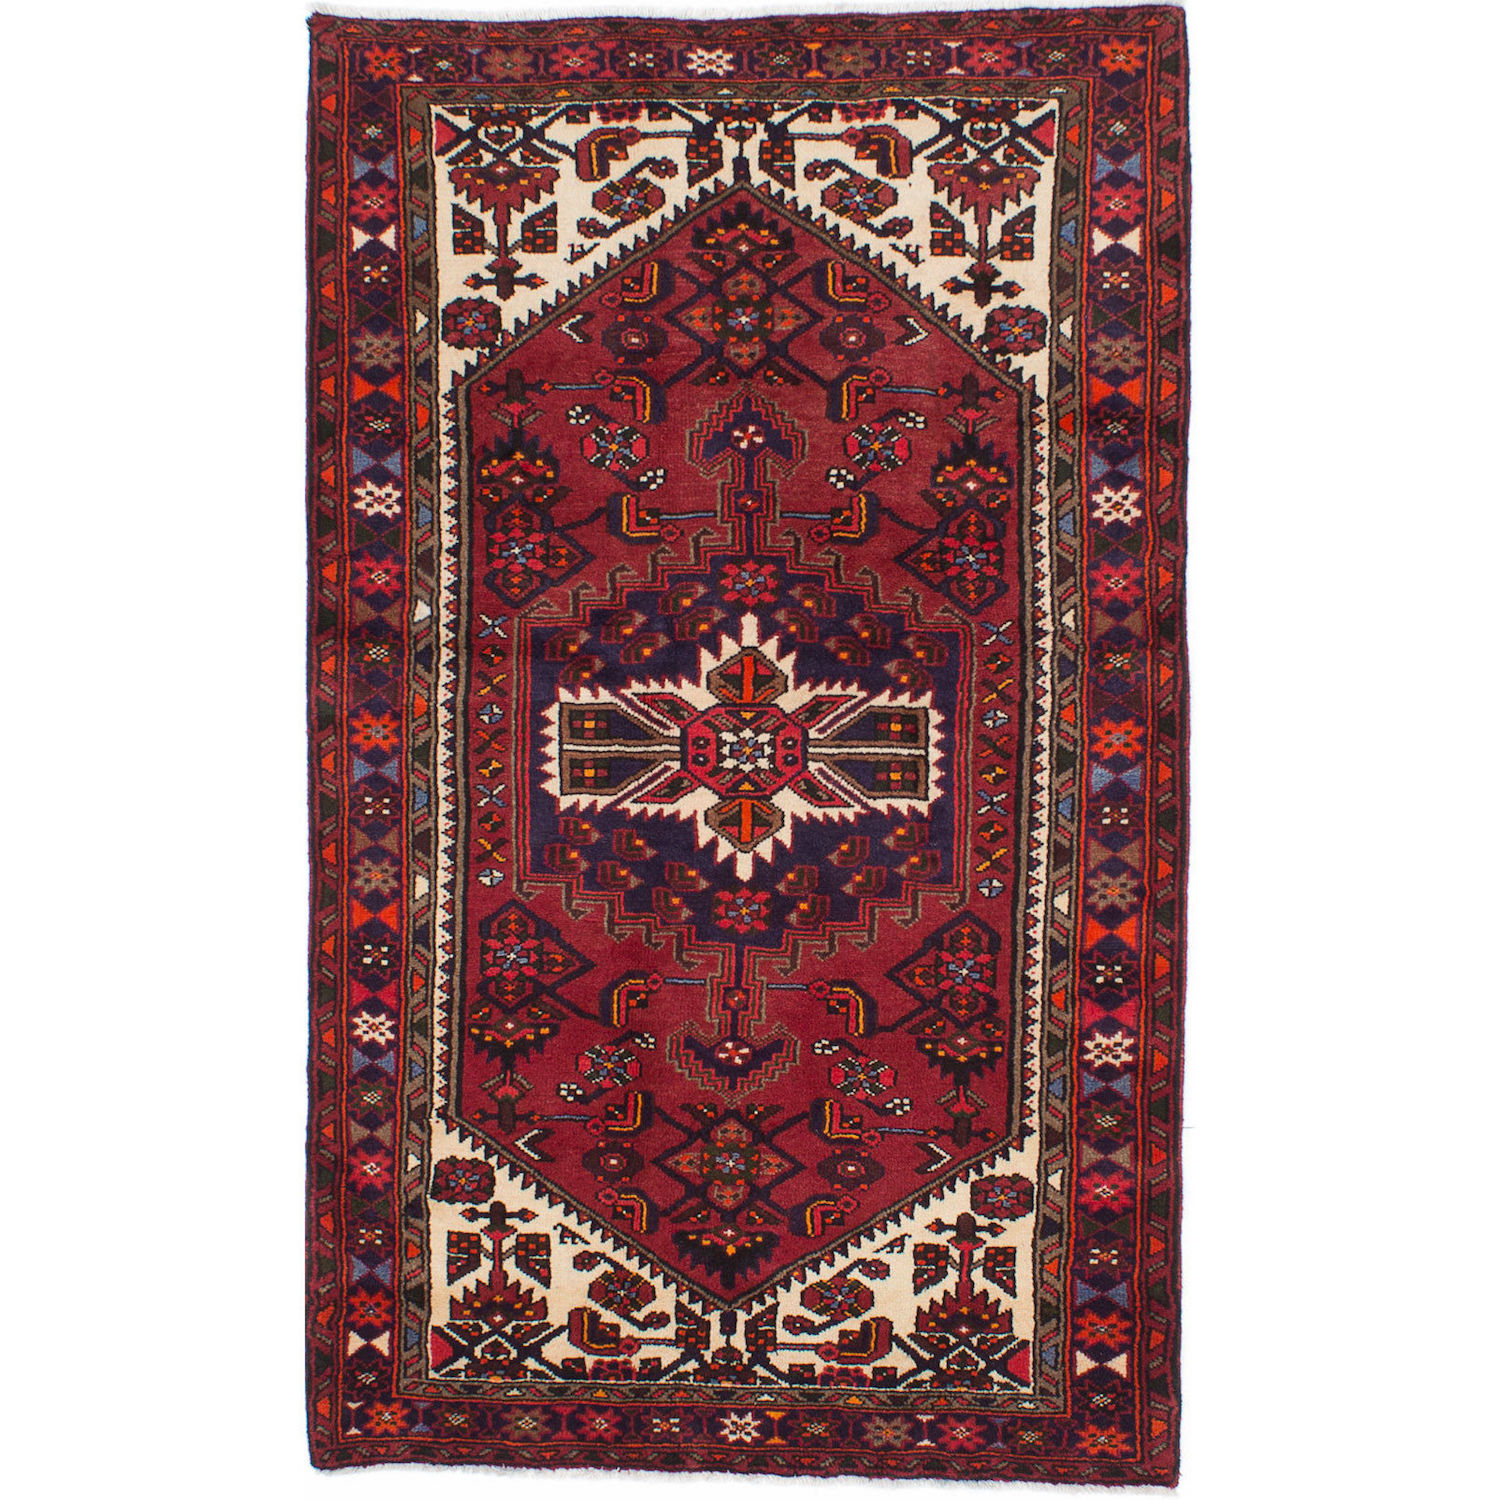 Carpet clipart rug persian. Are rugs a thing